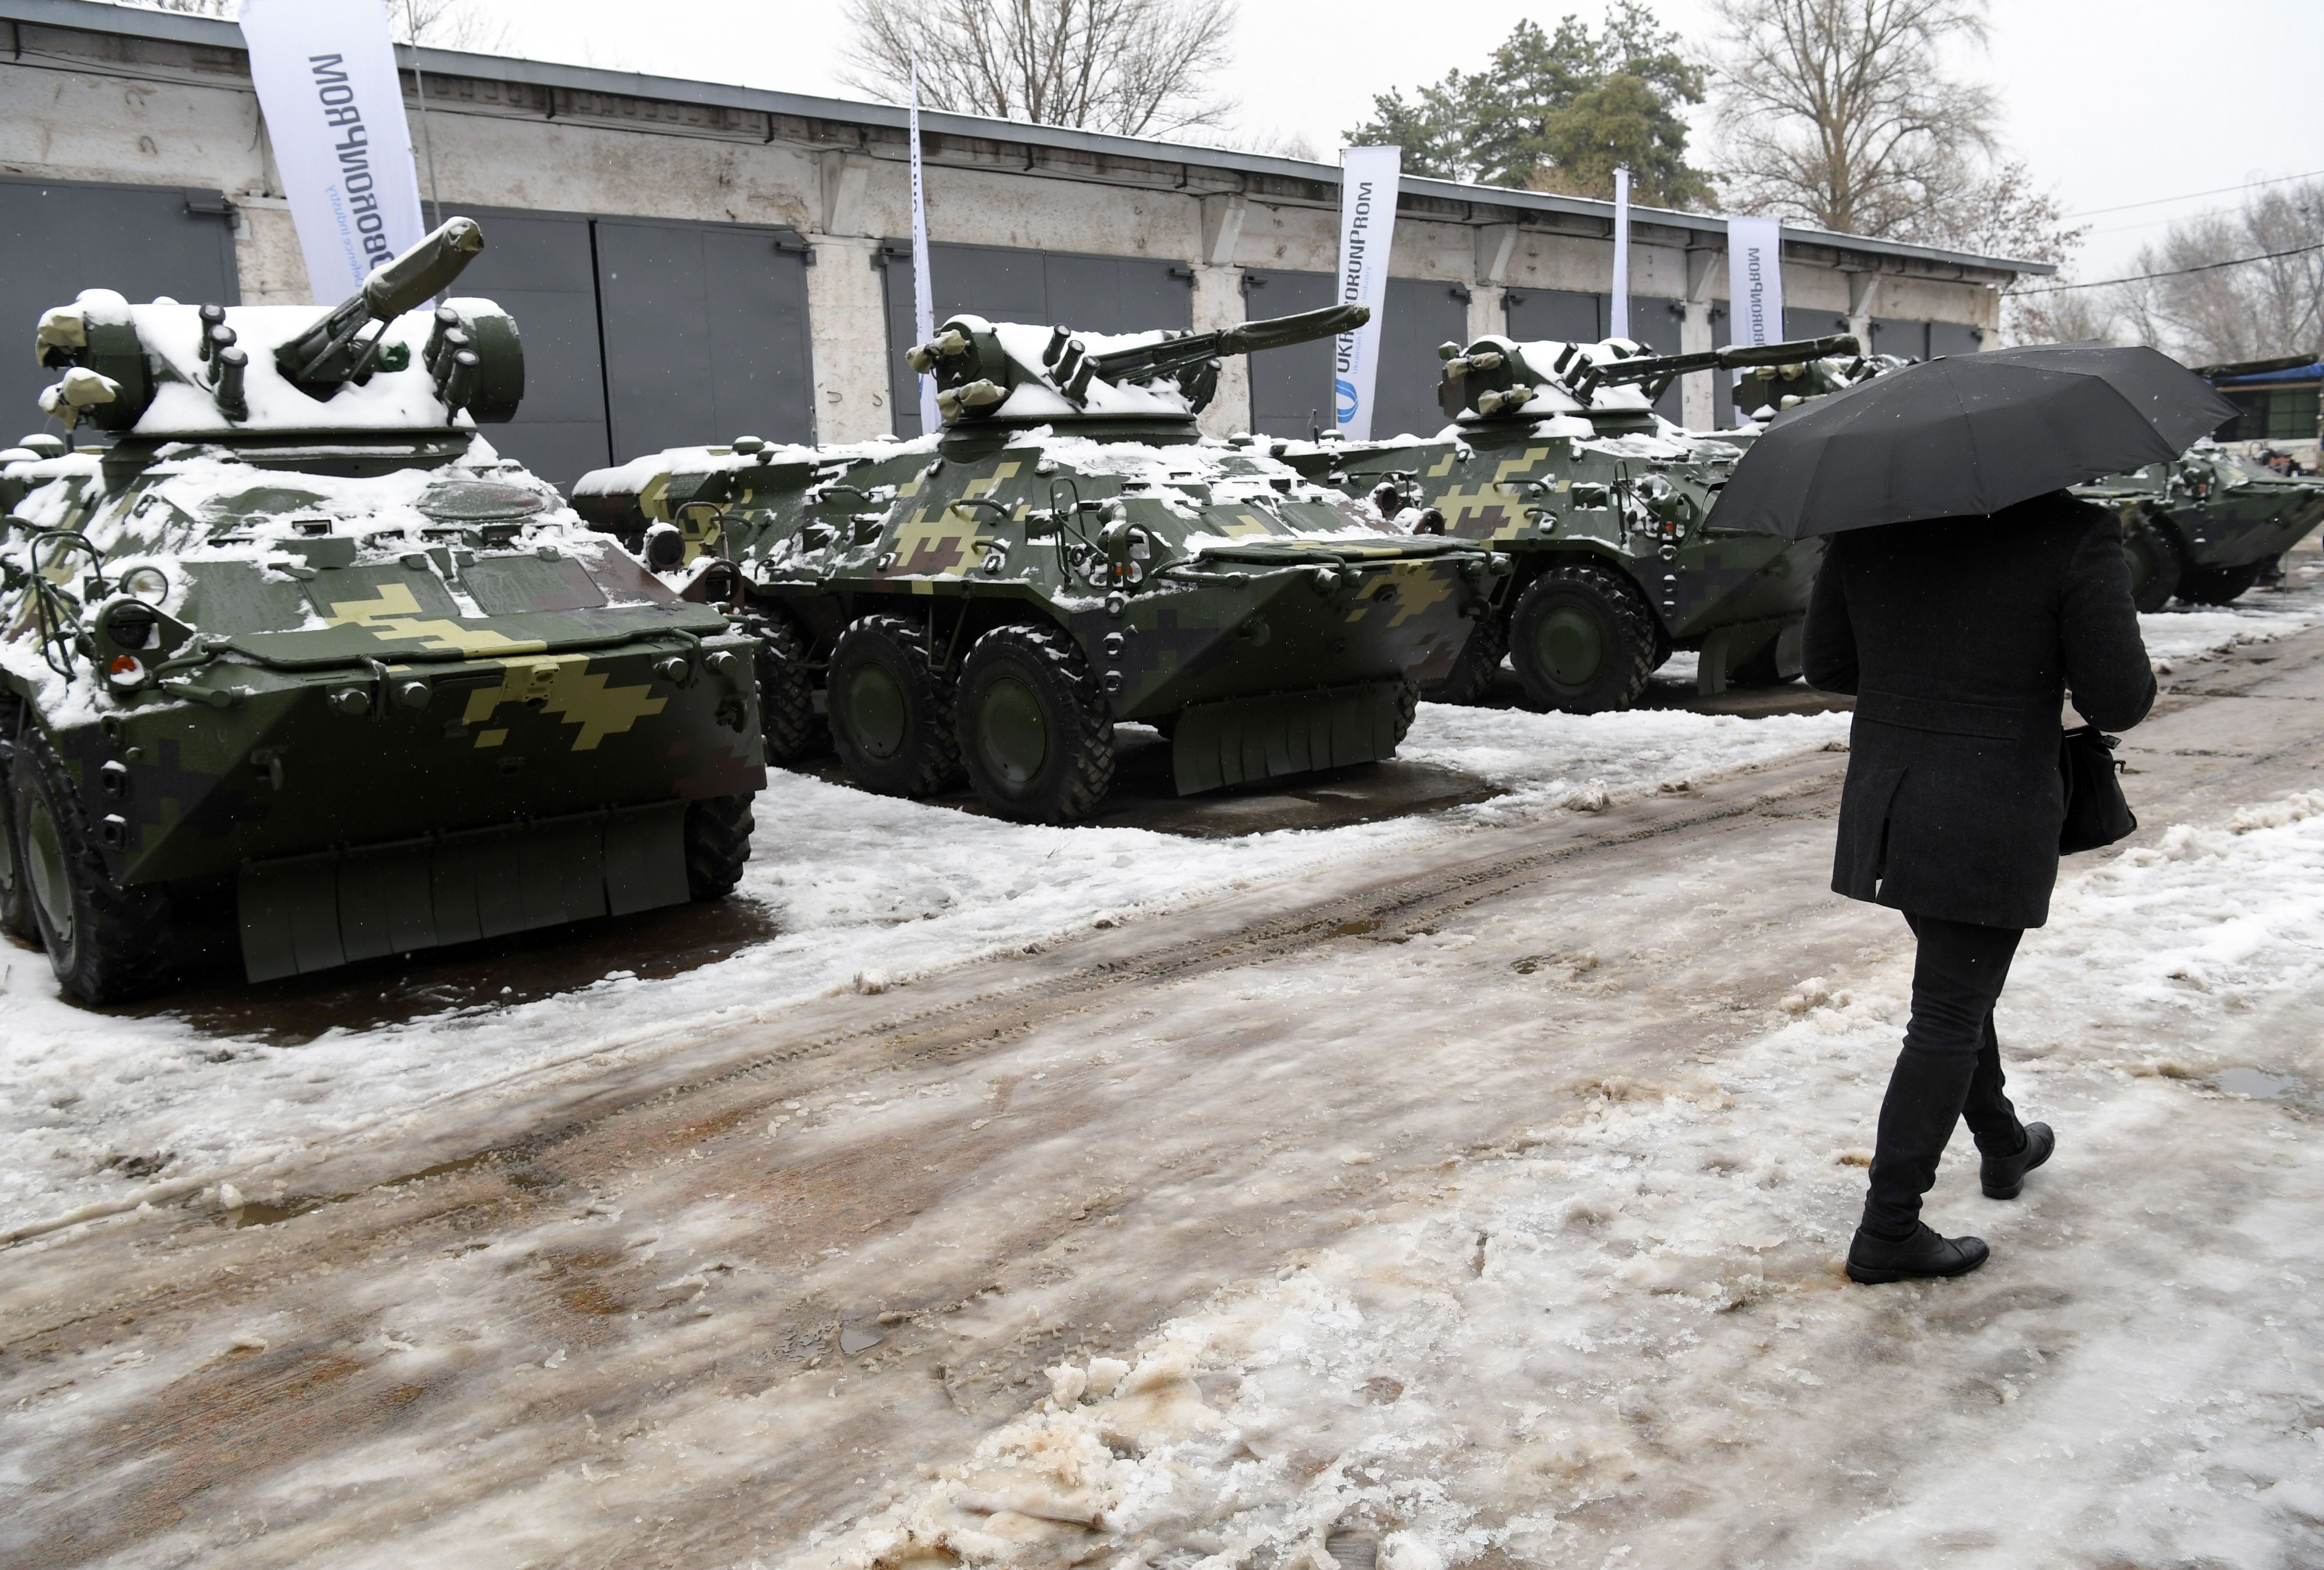 A man walks in front of new armored personnel carriers in Kiev on Nov. 15, 2018, after the handover of military weapons and equipment to Ukrainian servicemen taking part in armed conflict with Russia-backed separatists in the country's Donetsk region. (Sergei Supinsky/AFP via Getty Images)